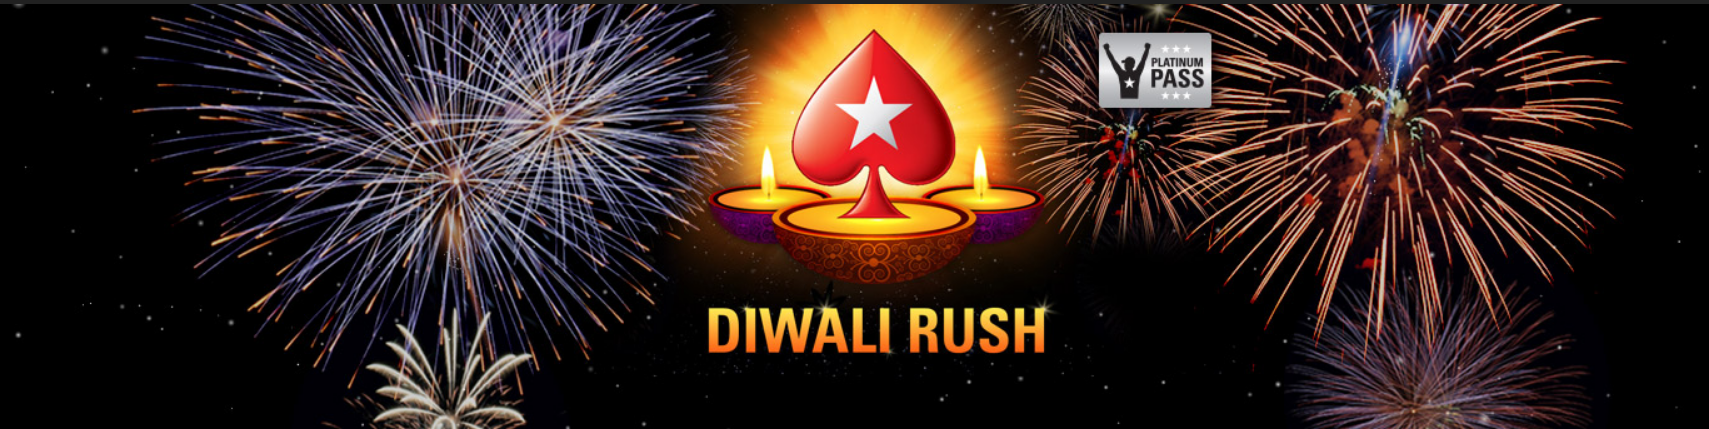 PokerStars unveils its first online tournament series—Diwali Rush for its Indian players. More than 1.5 Crore ($200,000) is guaranteed over the course of eight days.